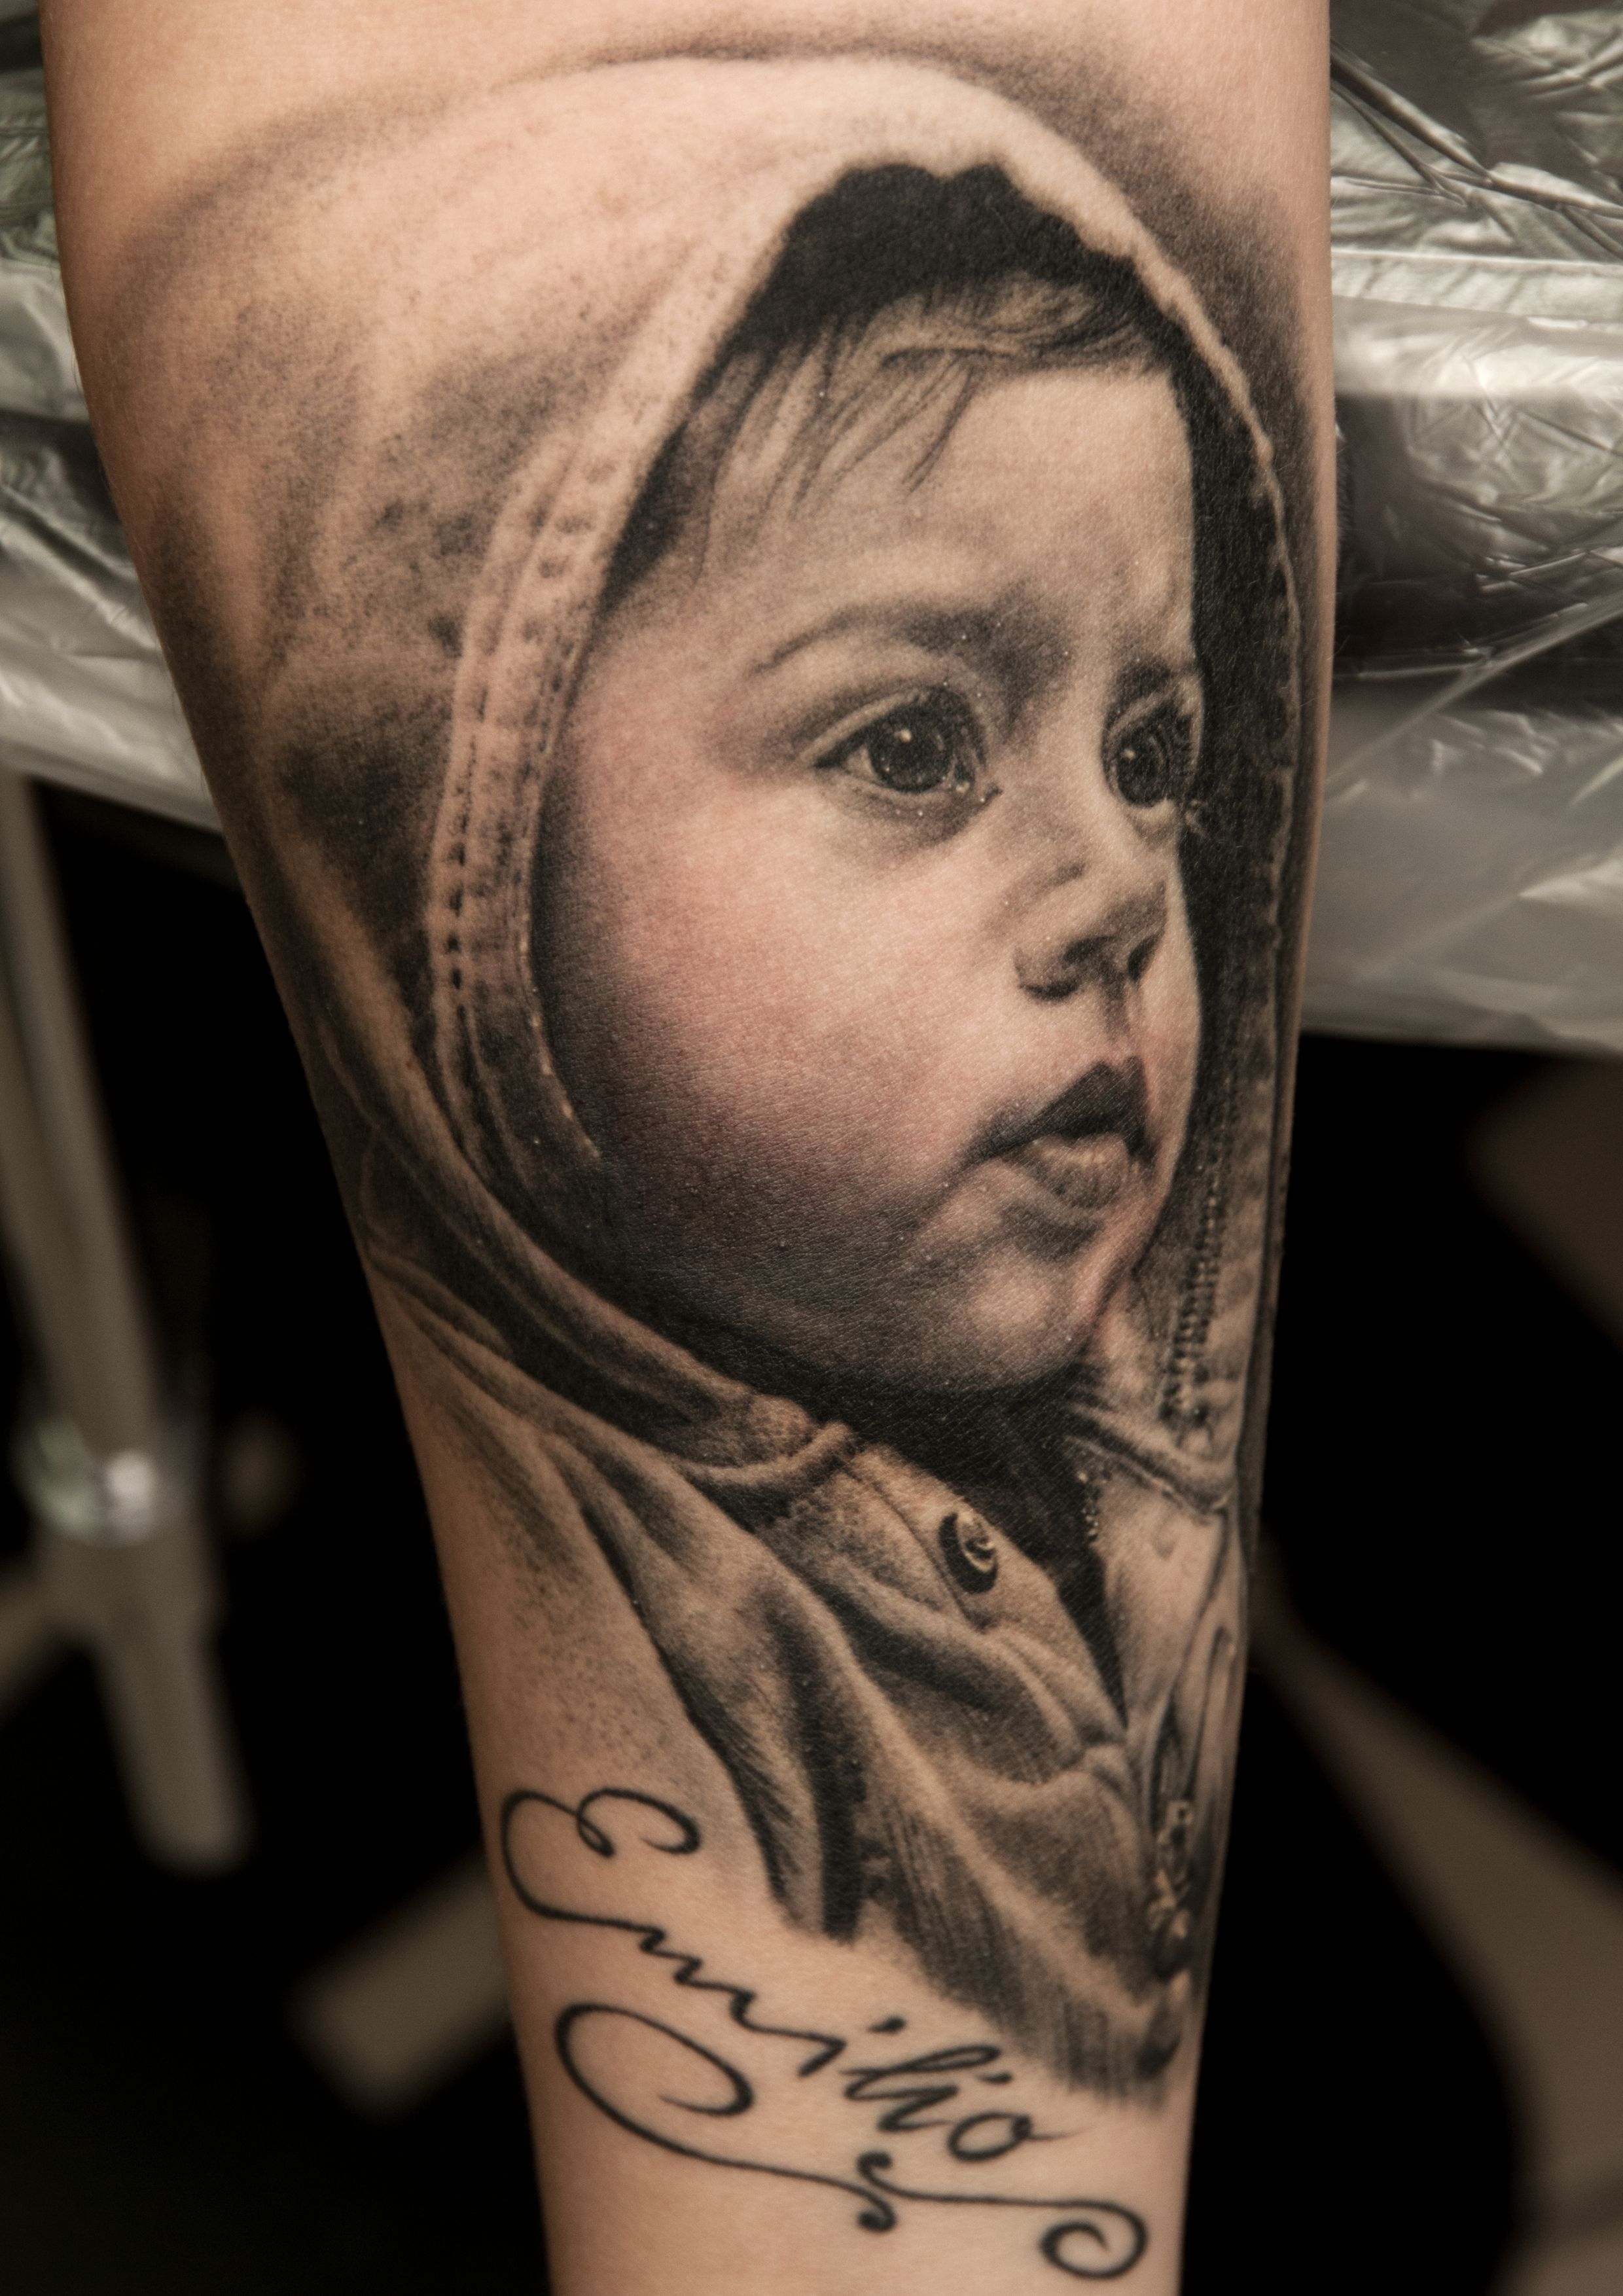 Baby portrait tattoo ideas - Tattoo Artist Andy Engel Portraits Tattoos I Did Of Beloved Ones For Example Children